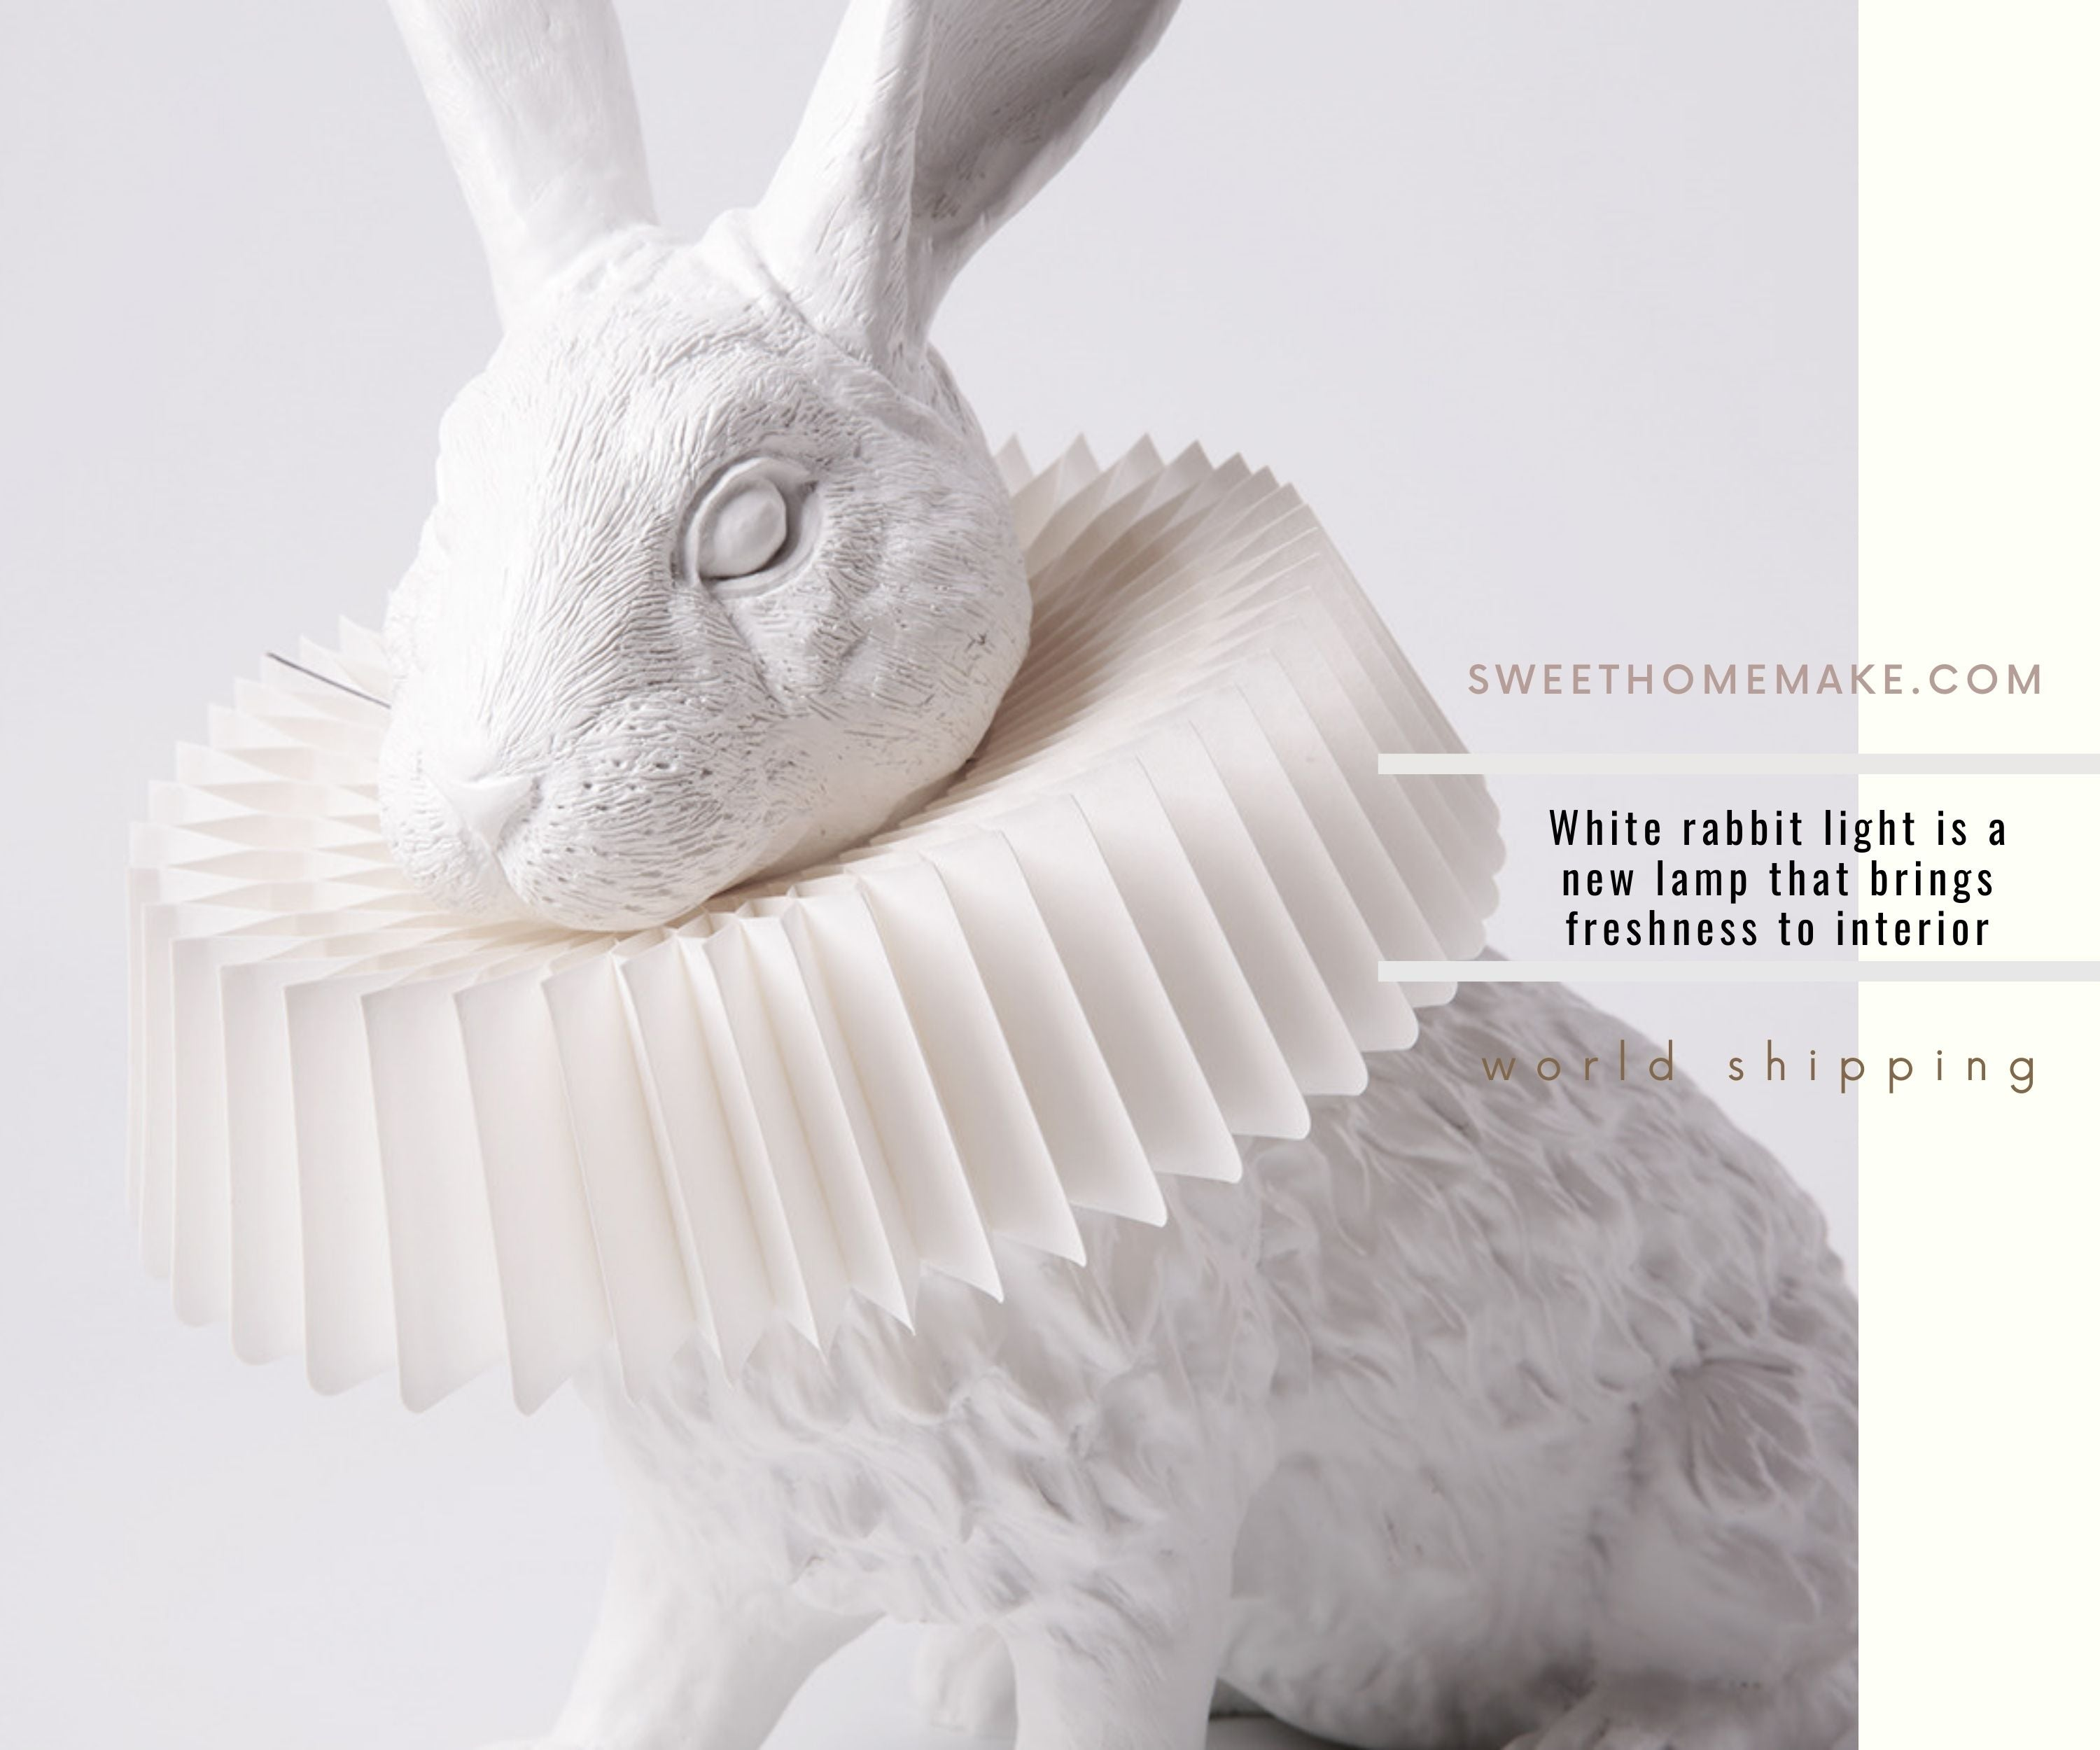 White rabbit light is a new lamp that brings freshness to interior